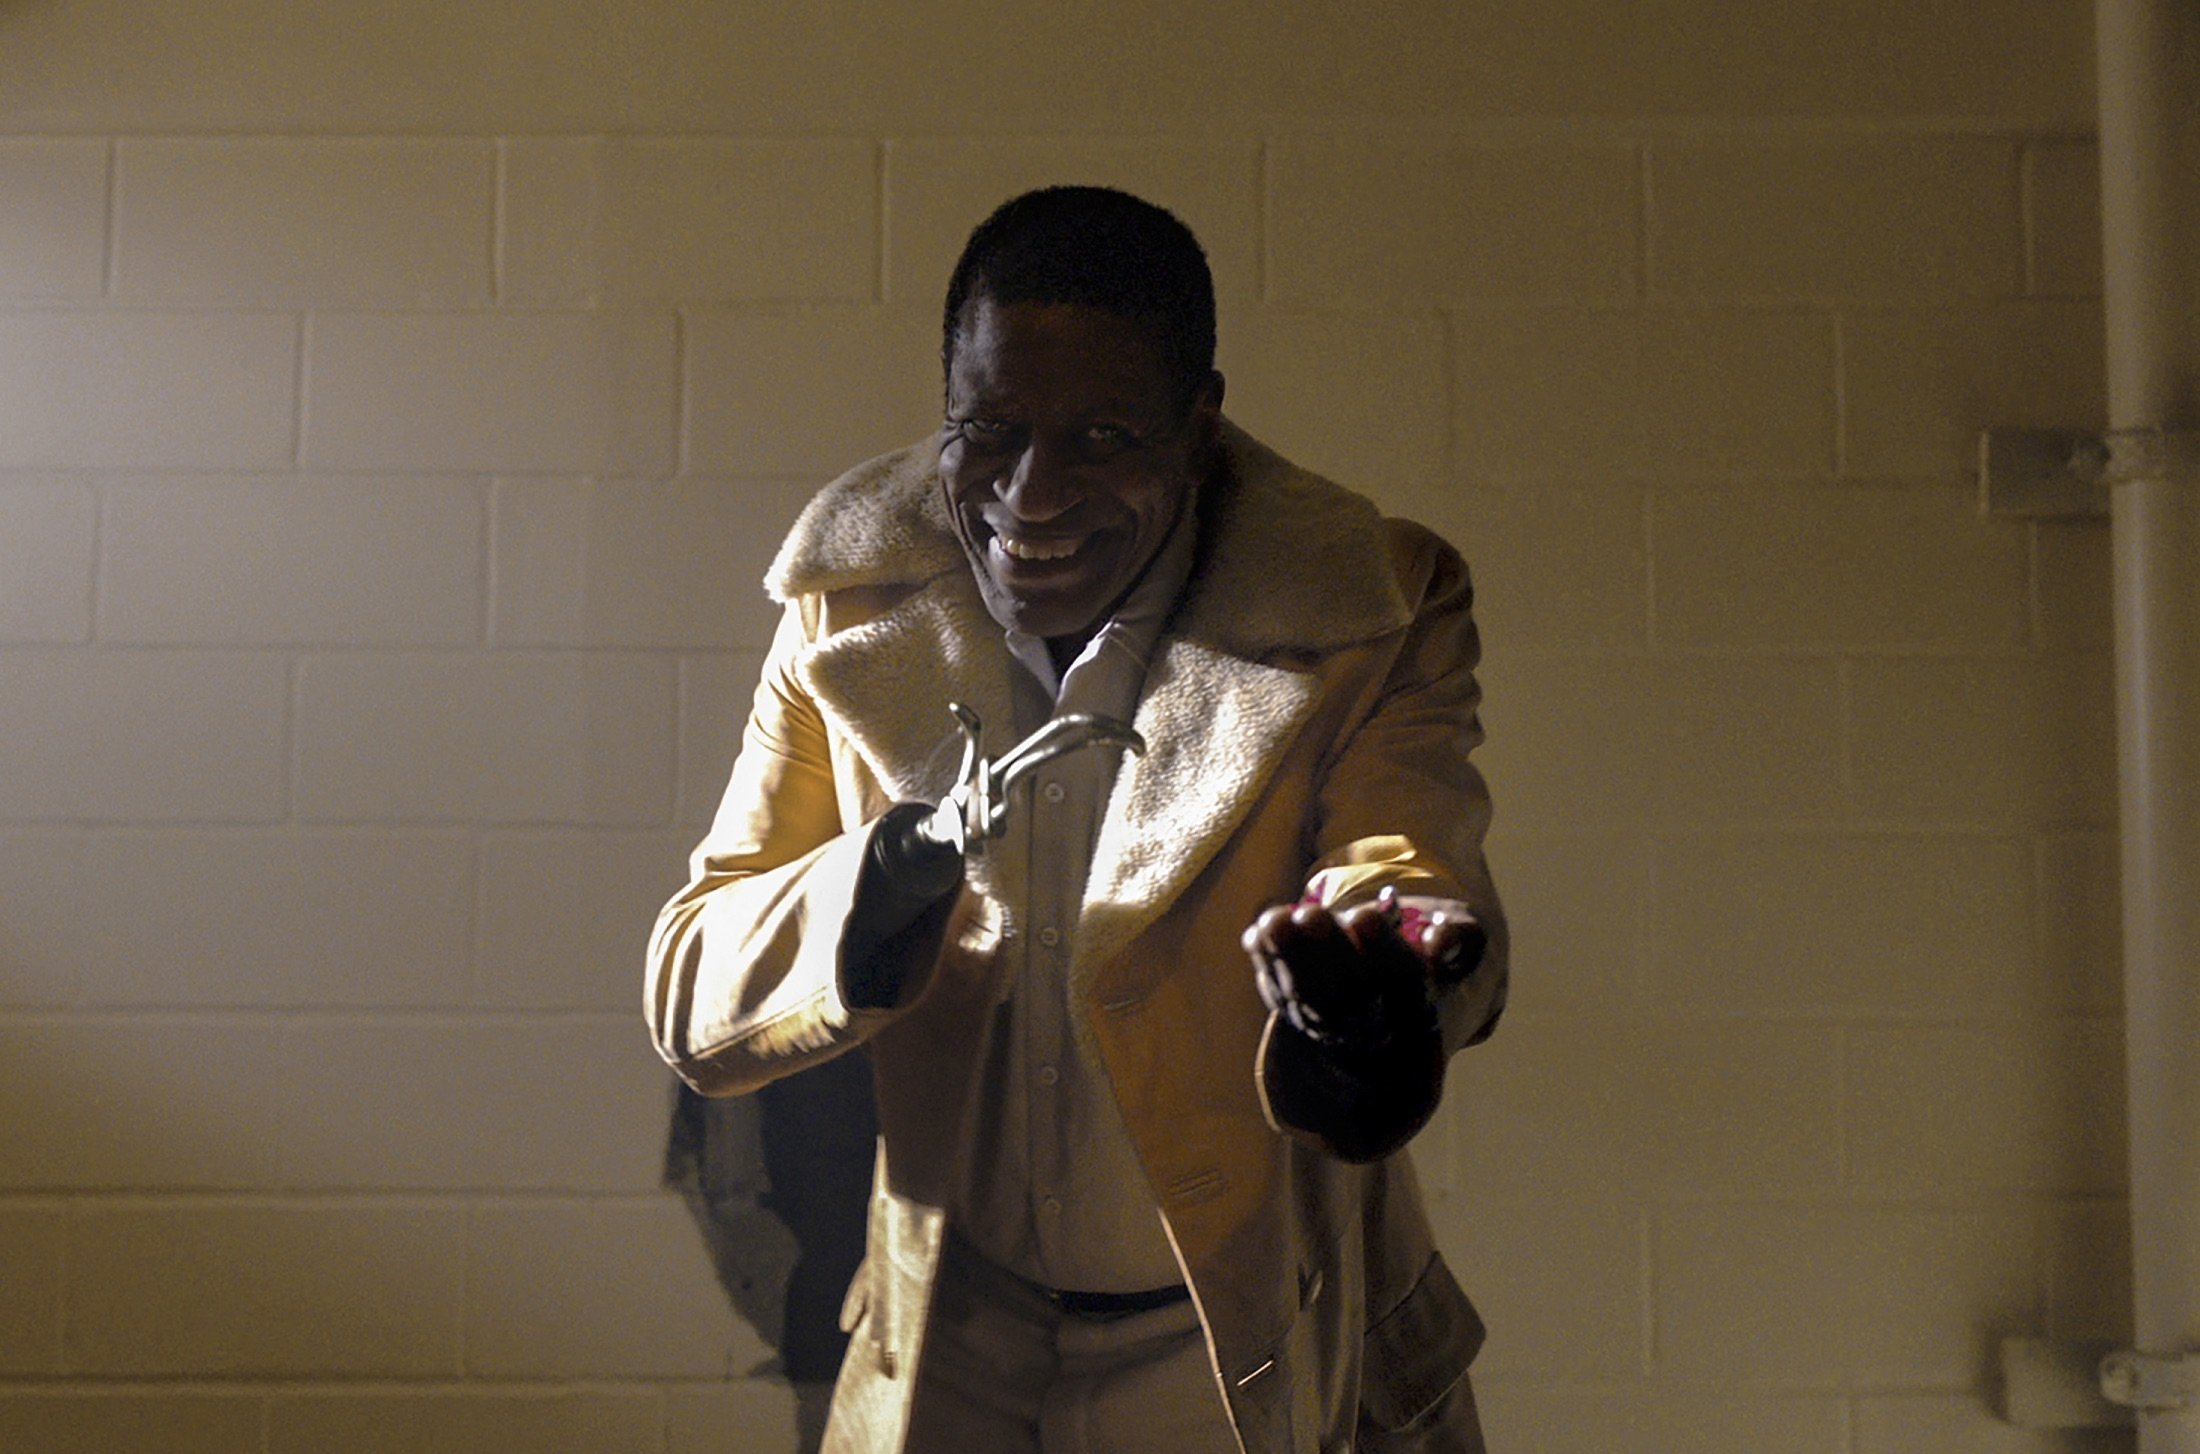 """Michael Hargrove as Sherman Fields smiles and gestures, in a scene from the film """"Candyman,"""" directed by Nia DaCosta. (AP Photo)"""